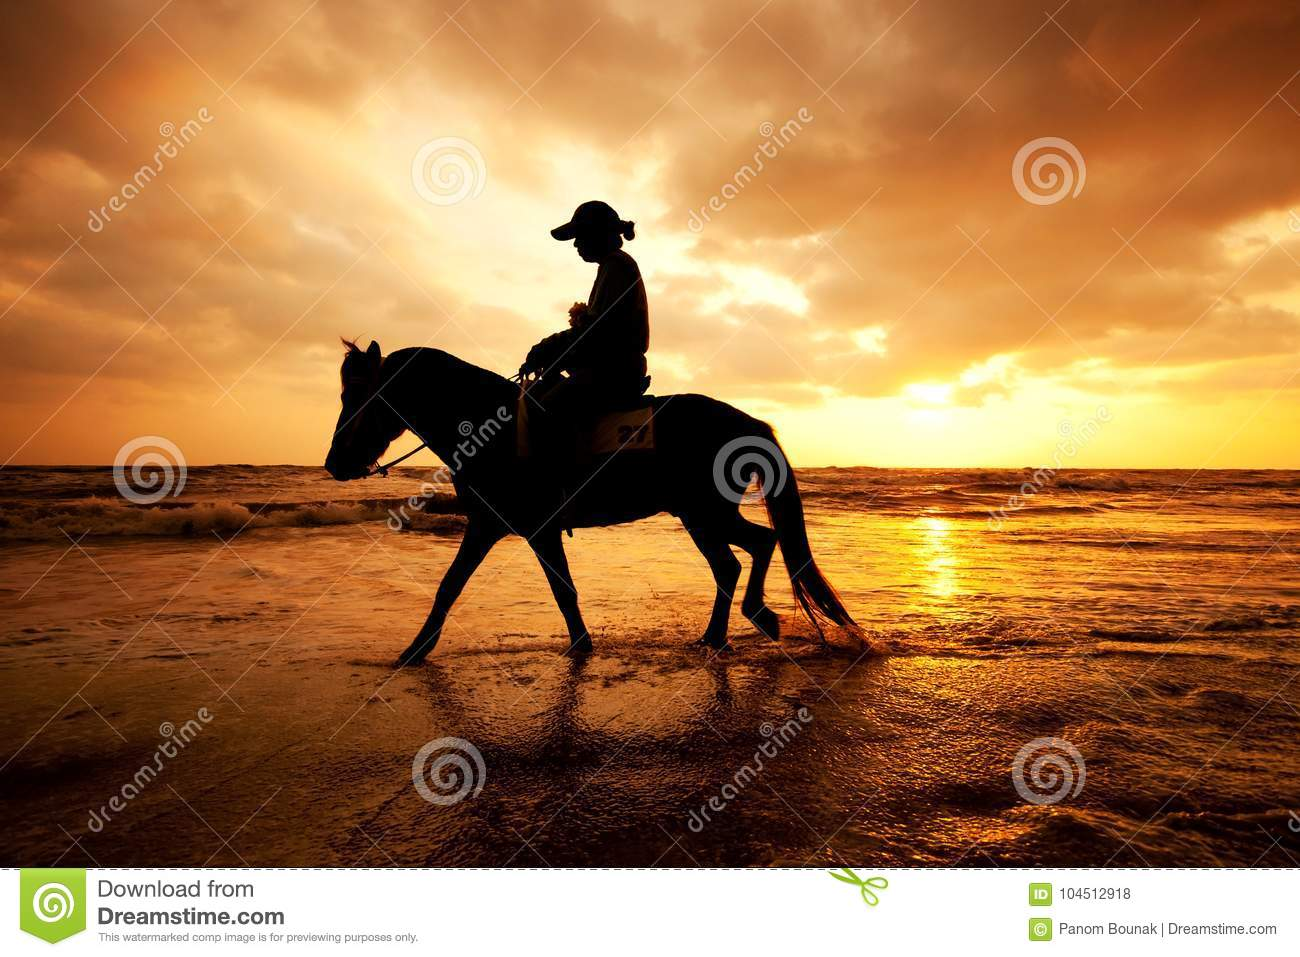 Silhouette man and horse on the beach with sunset sky